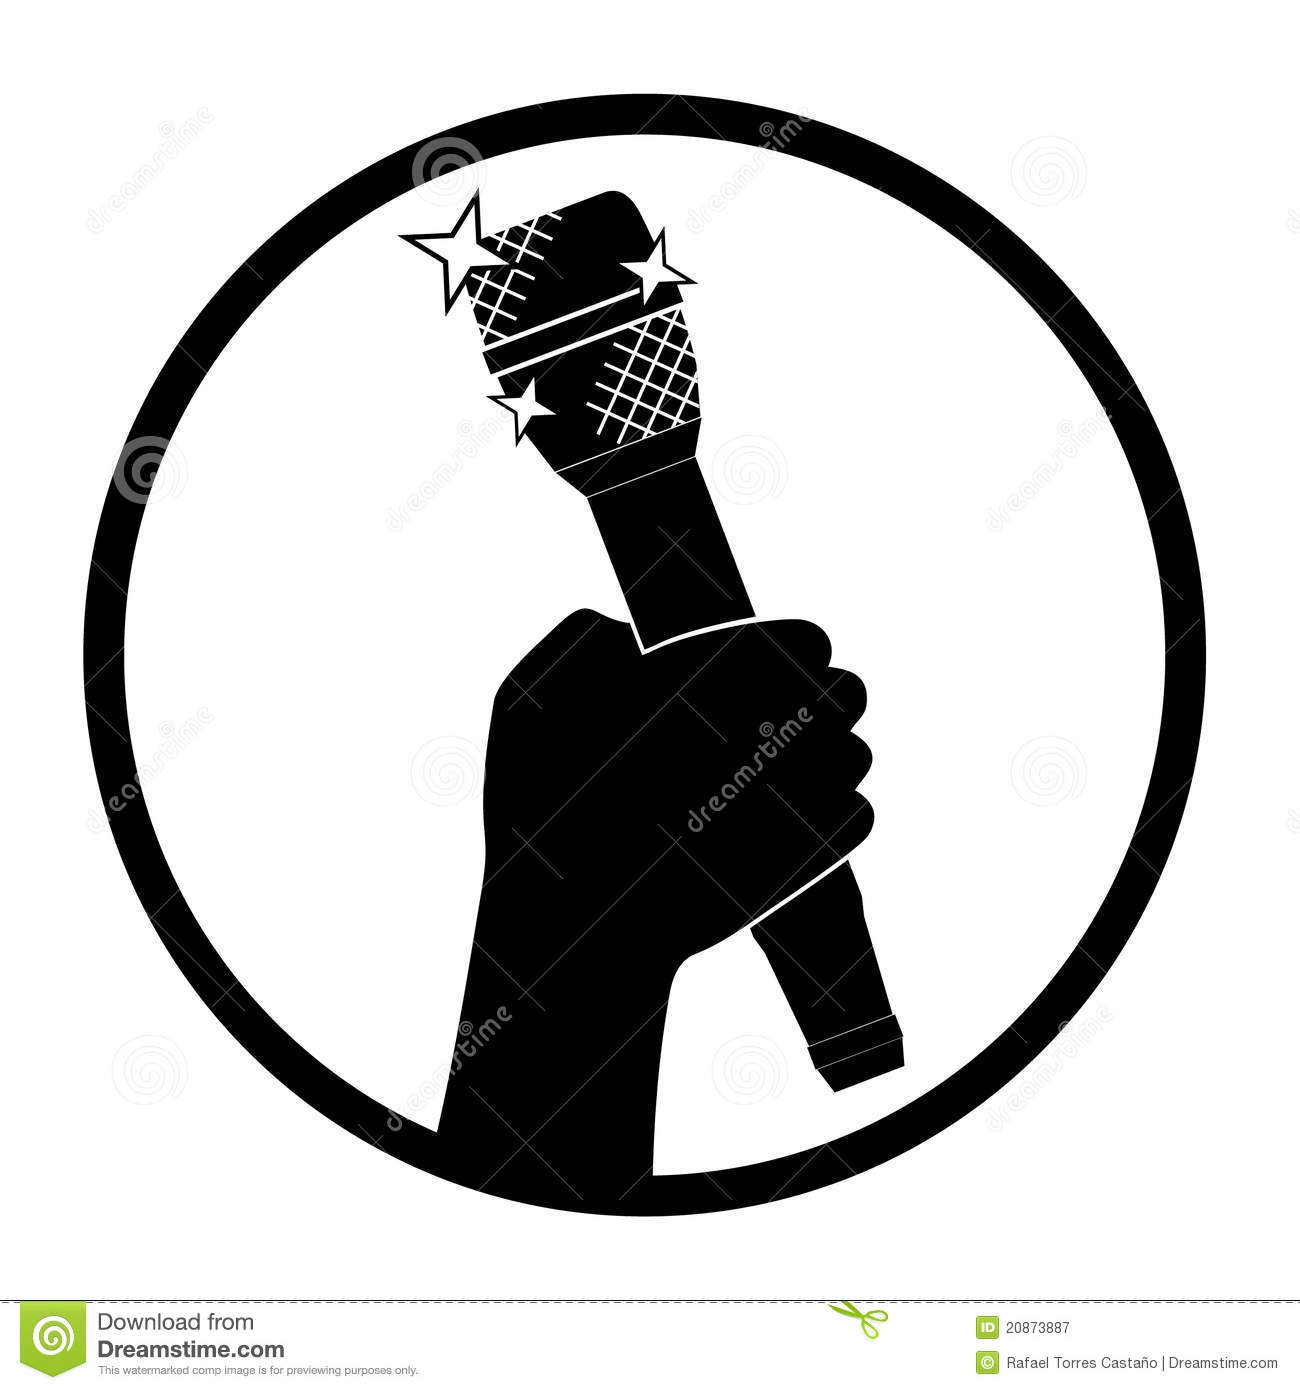 Microphone Icon Royalty Free Stock Photography